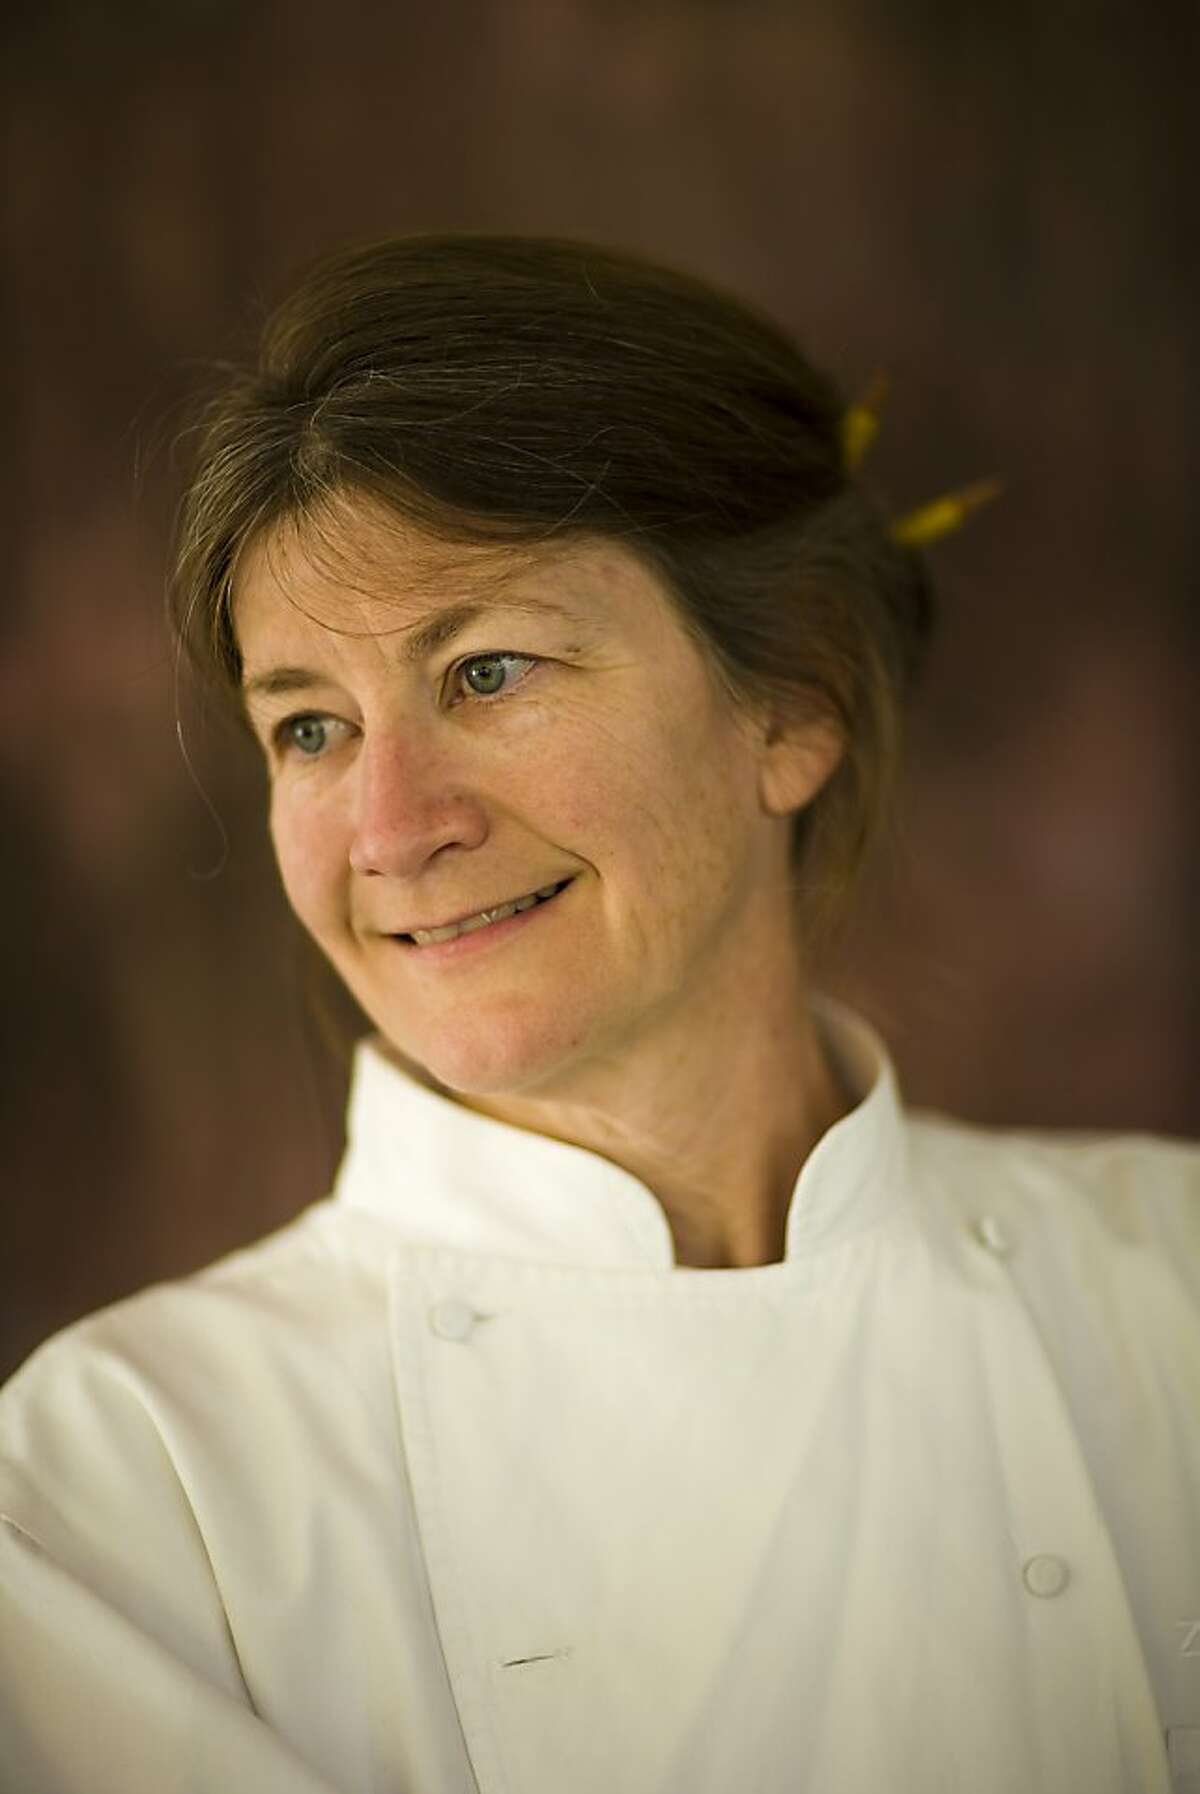 Judy Rodgers, chef at Zuni Cafe in San Francisco, Calif. on June 9, 2008. Photo by Craig Lee / The Chronicle